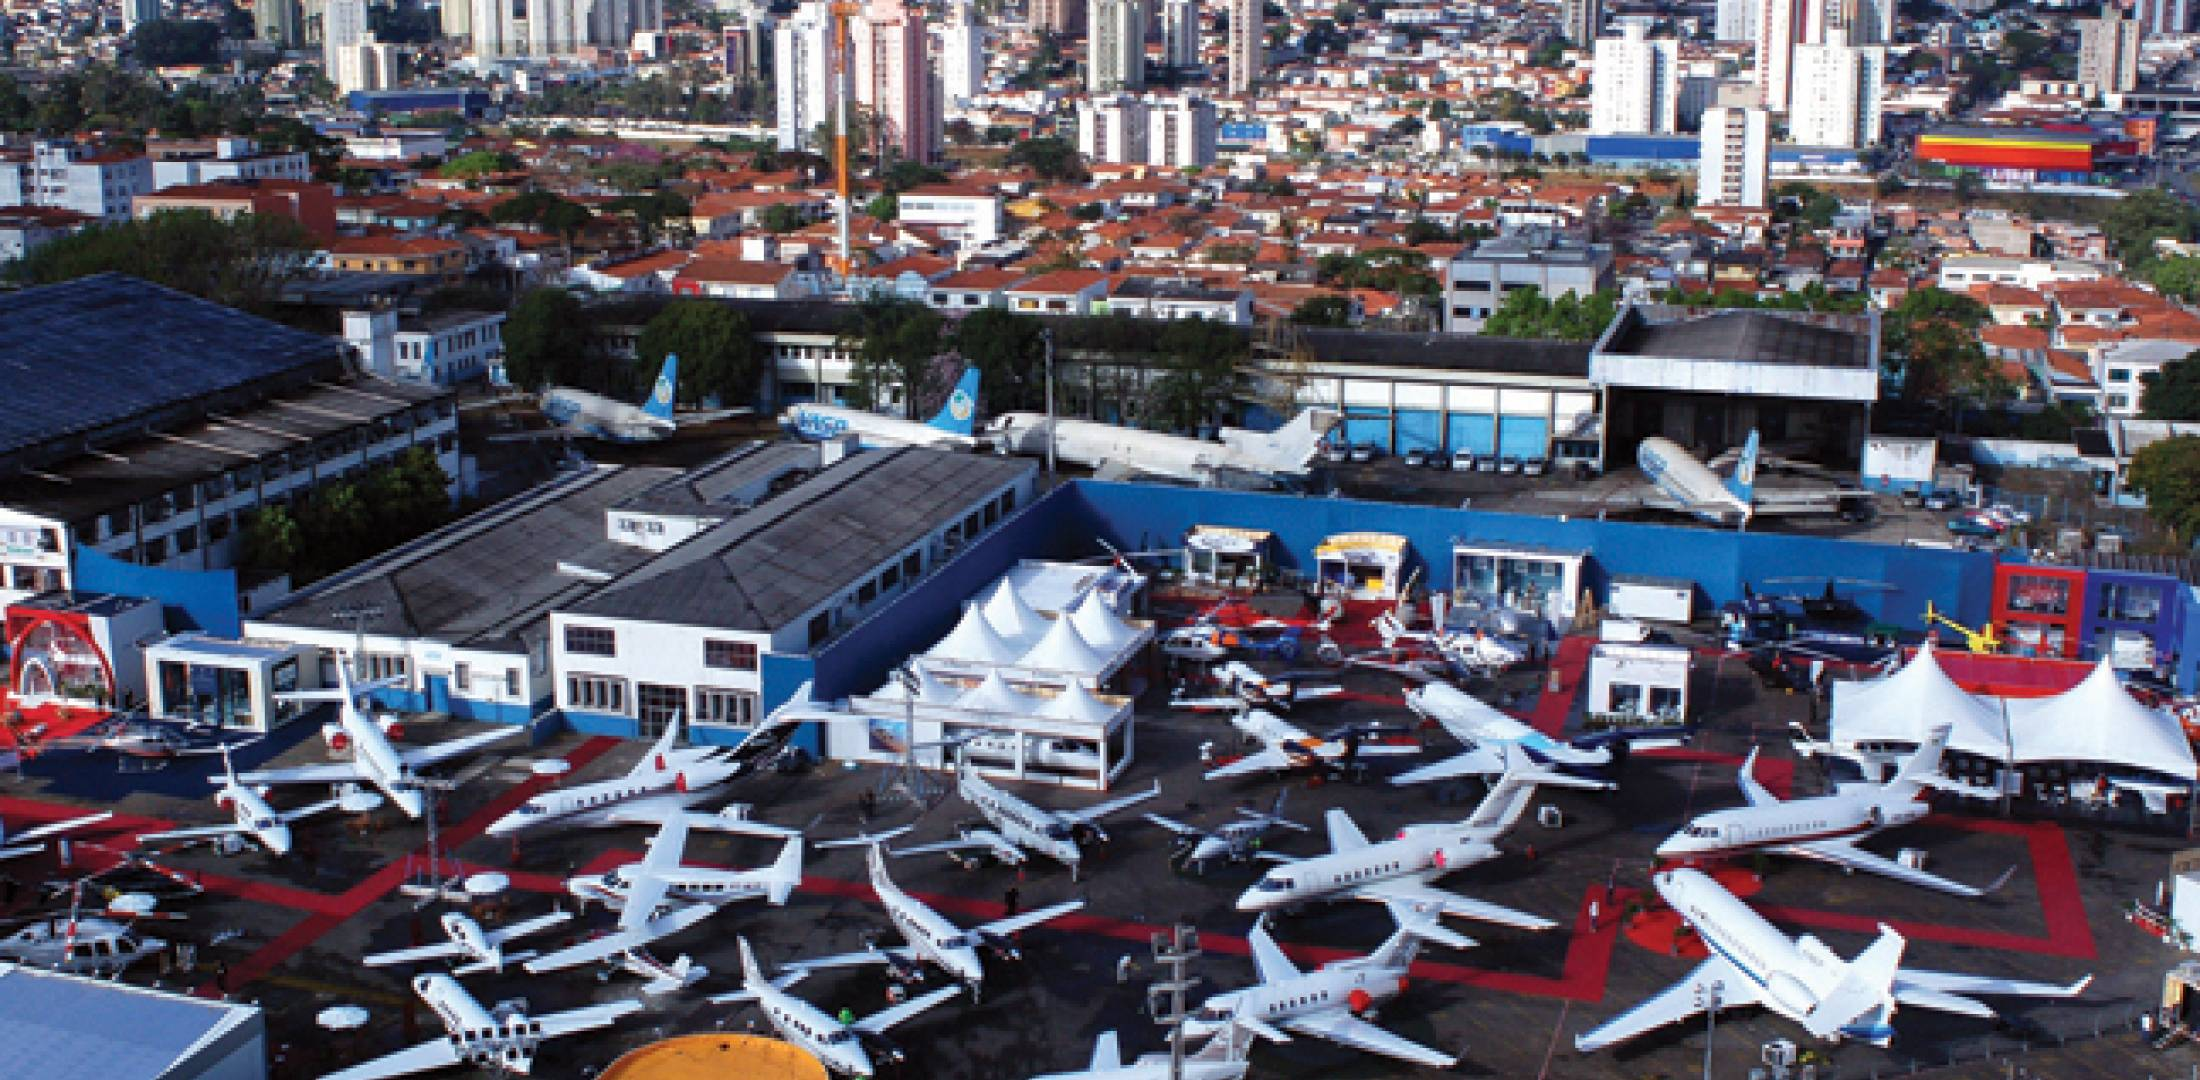 The Latin American Business Aviation Conference & Exhibition, held last year at Congonhas Airport, will be at the same venue in 2012 and organizers expect the site will be available again next year.